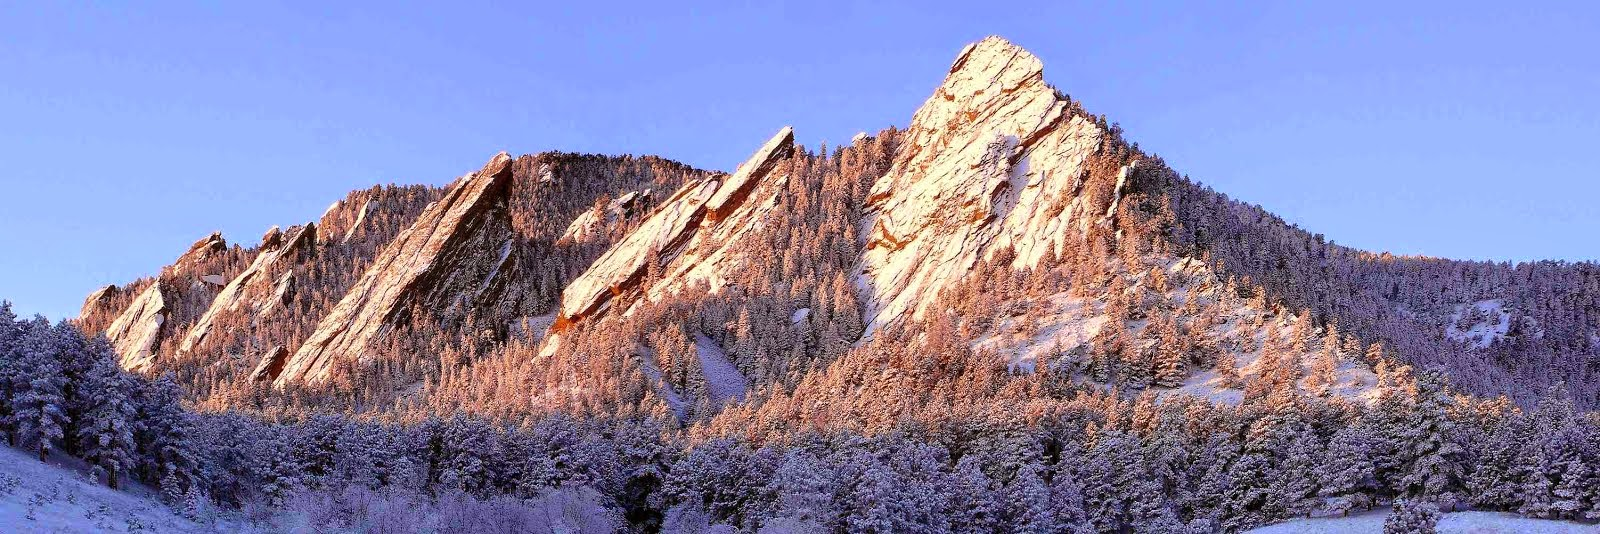 The Flatirons on the Front Range